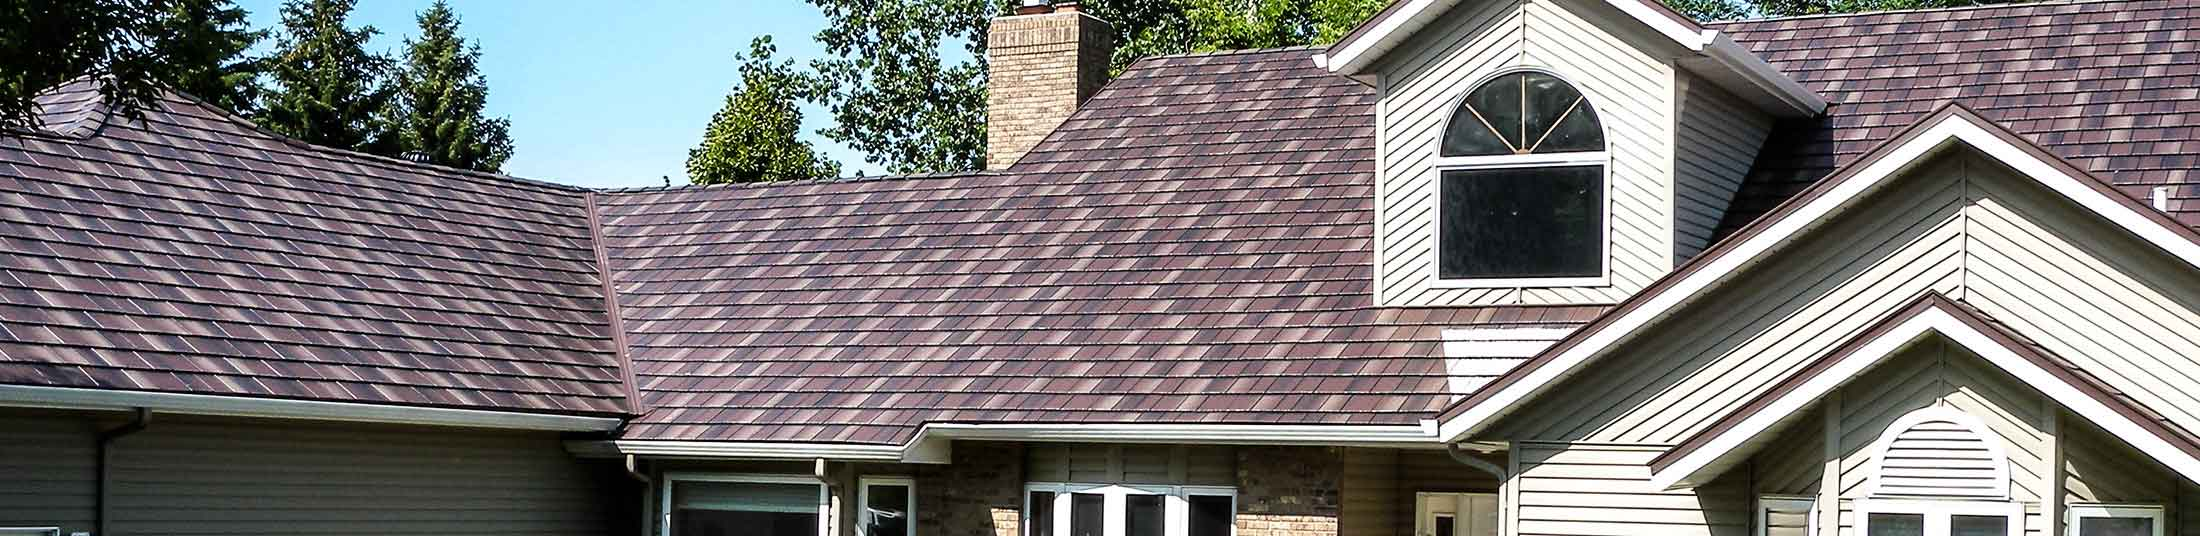 ABC Roofing Green Bay